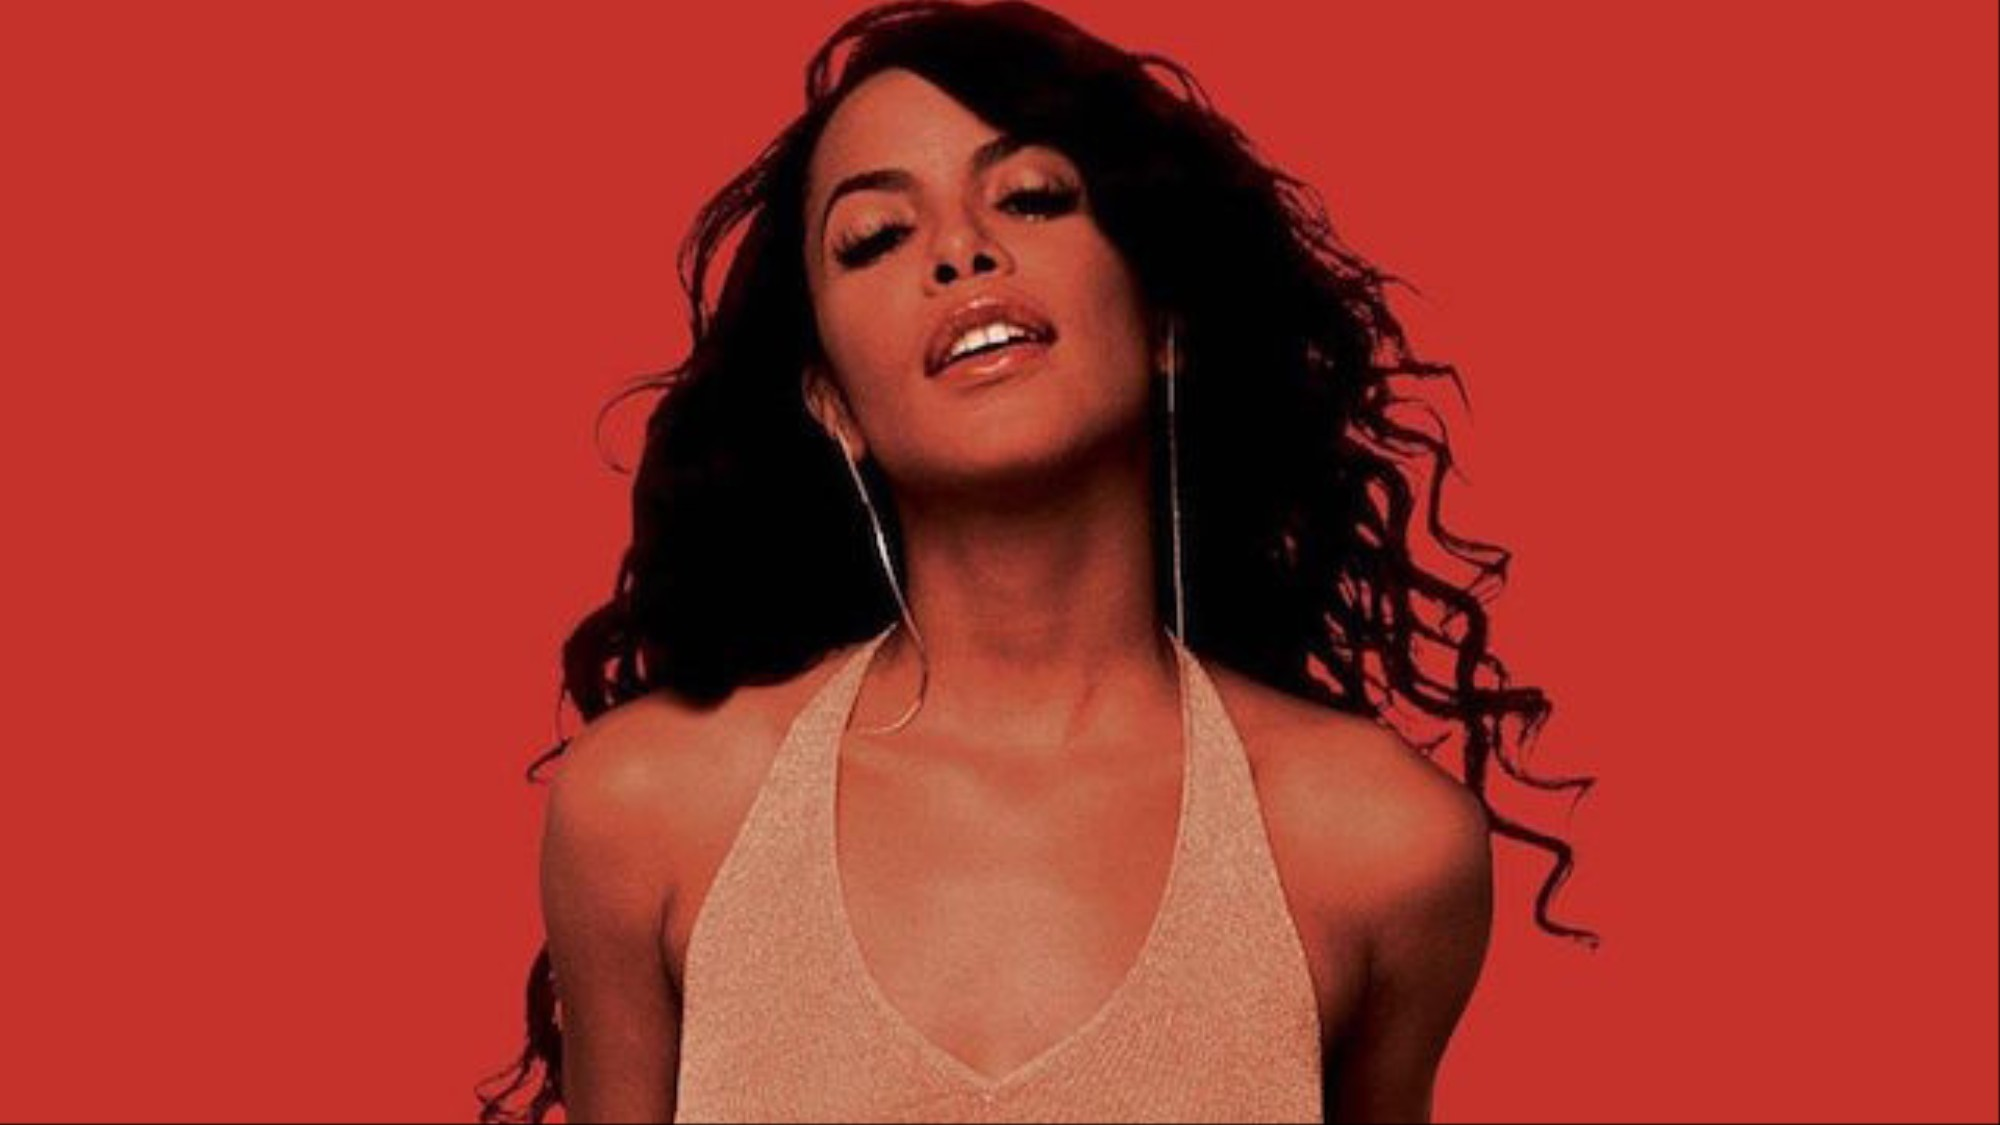 It S Been 19 Years Since Aaliyah Died And Her Best Music Is Still Missing From Streaming Services City Slang